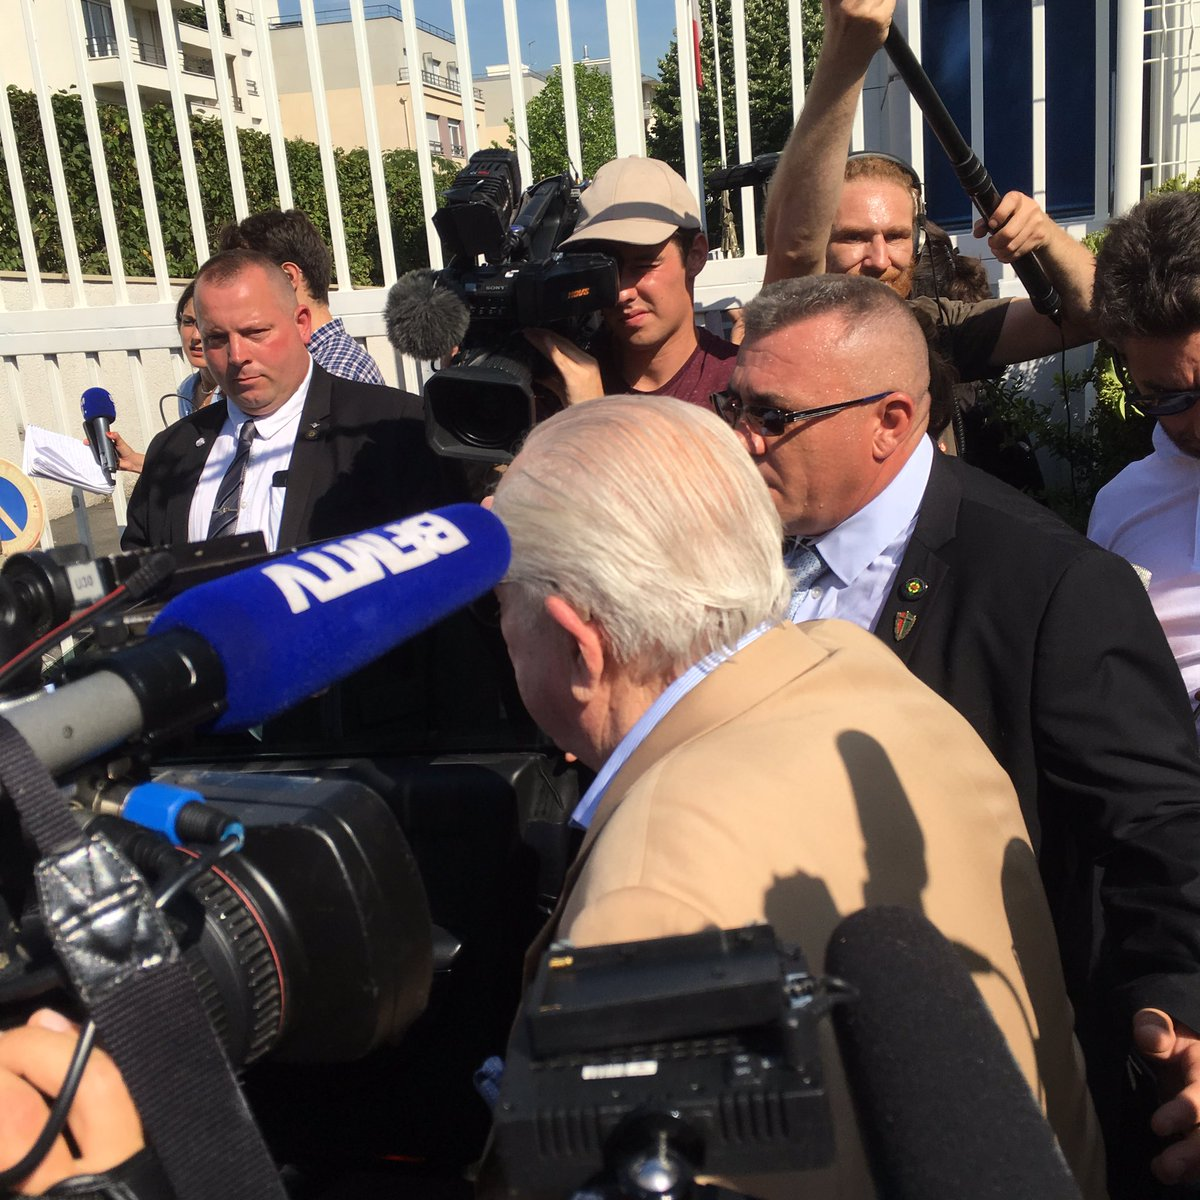 #JeanMarieLePen kept out of #FN policy meeting. &quot;#MarineLePen should resign, she&#39;s afraid I&#39;ll tell the truth&quot;, spoke of her failed policies <br>http://pic.twitter.com/uqC7nJu8TG